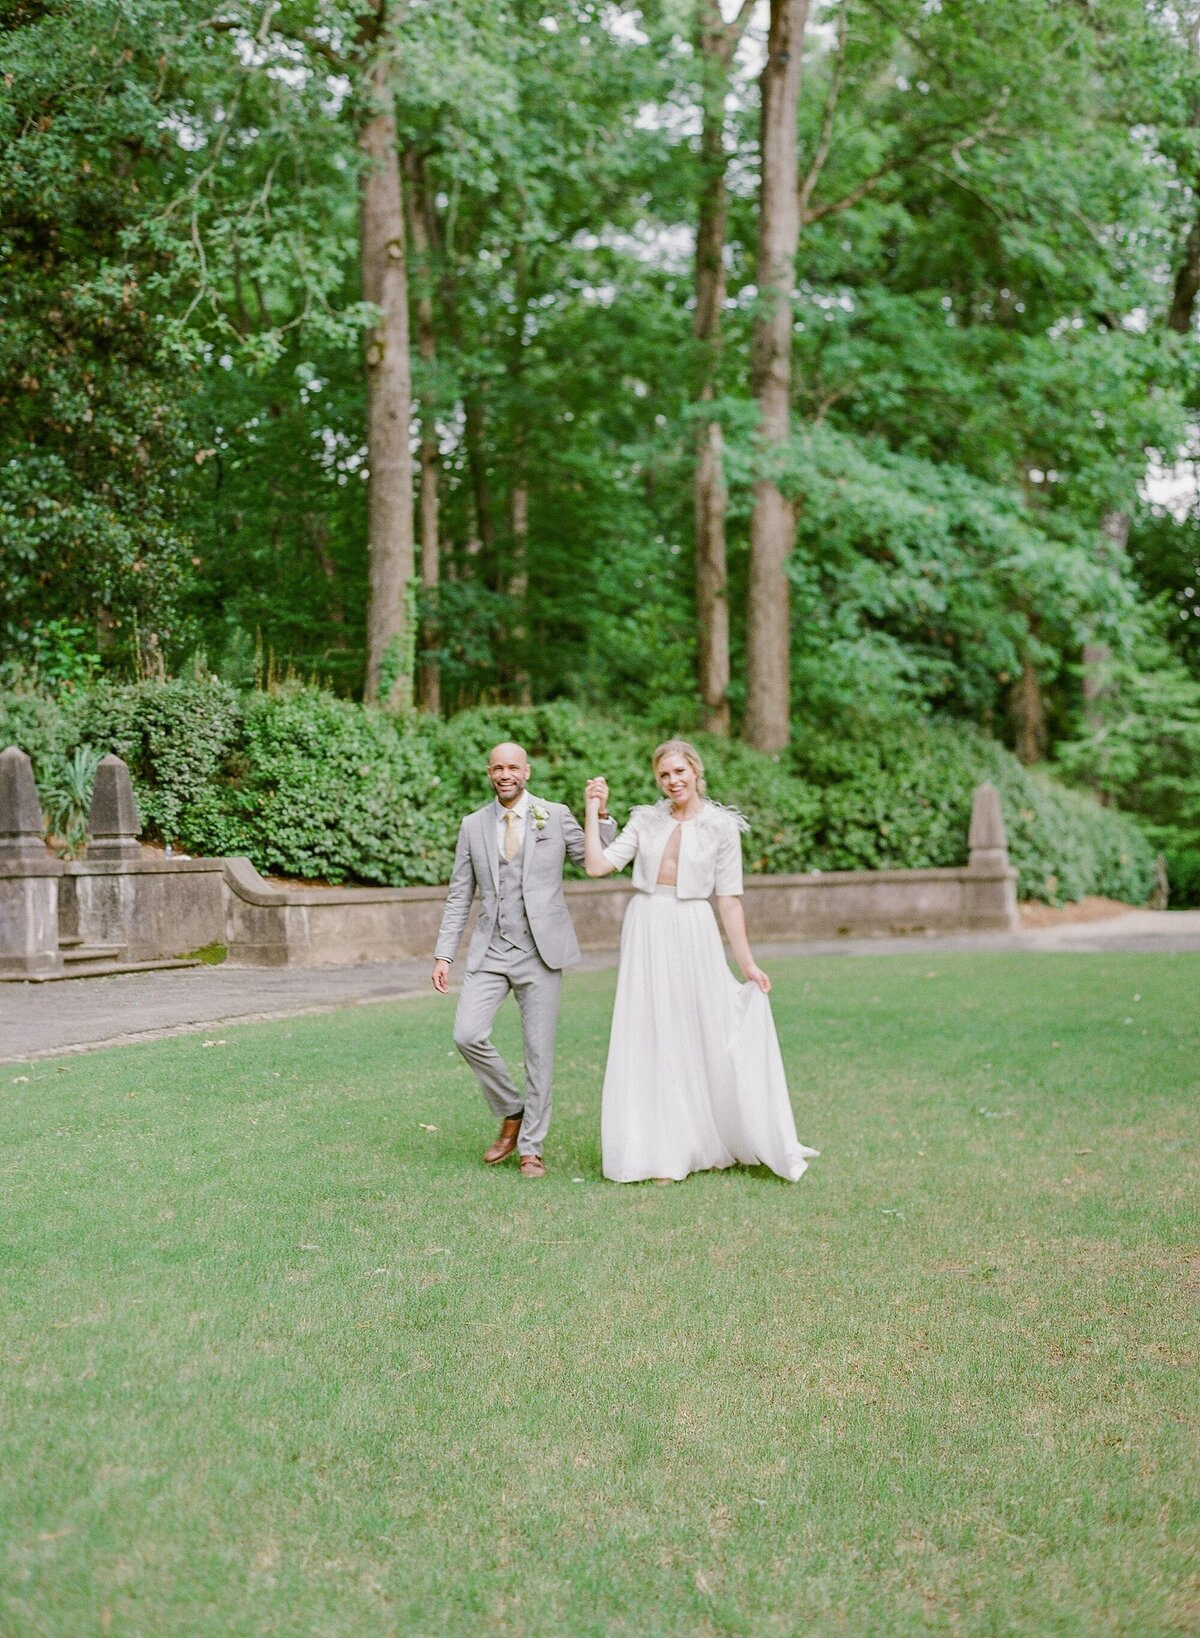 Birmingham-Alabama-Wedding-Photographer_Swan-House-Atlanta-Wedding_124